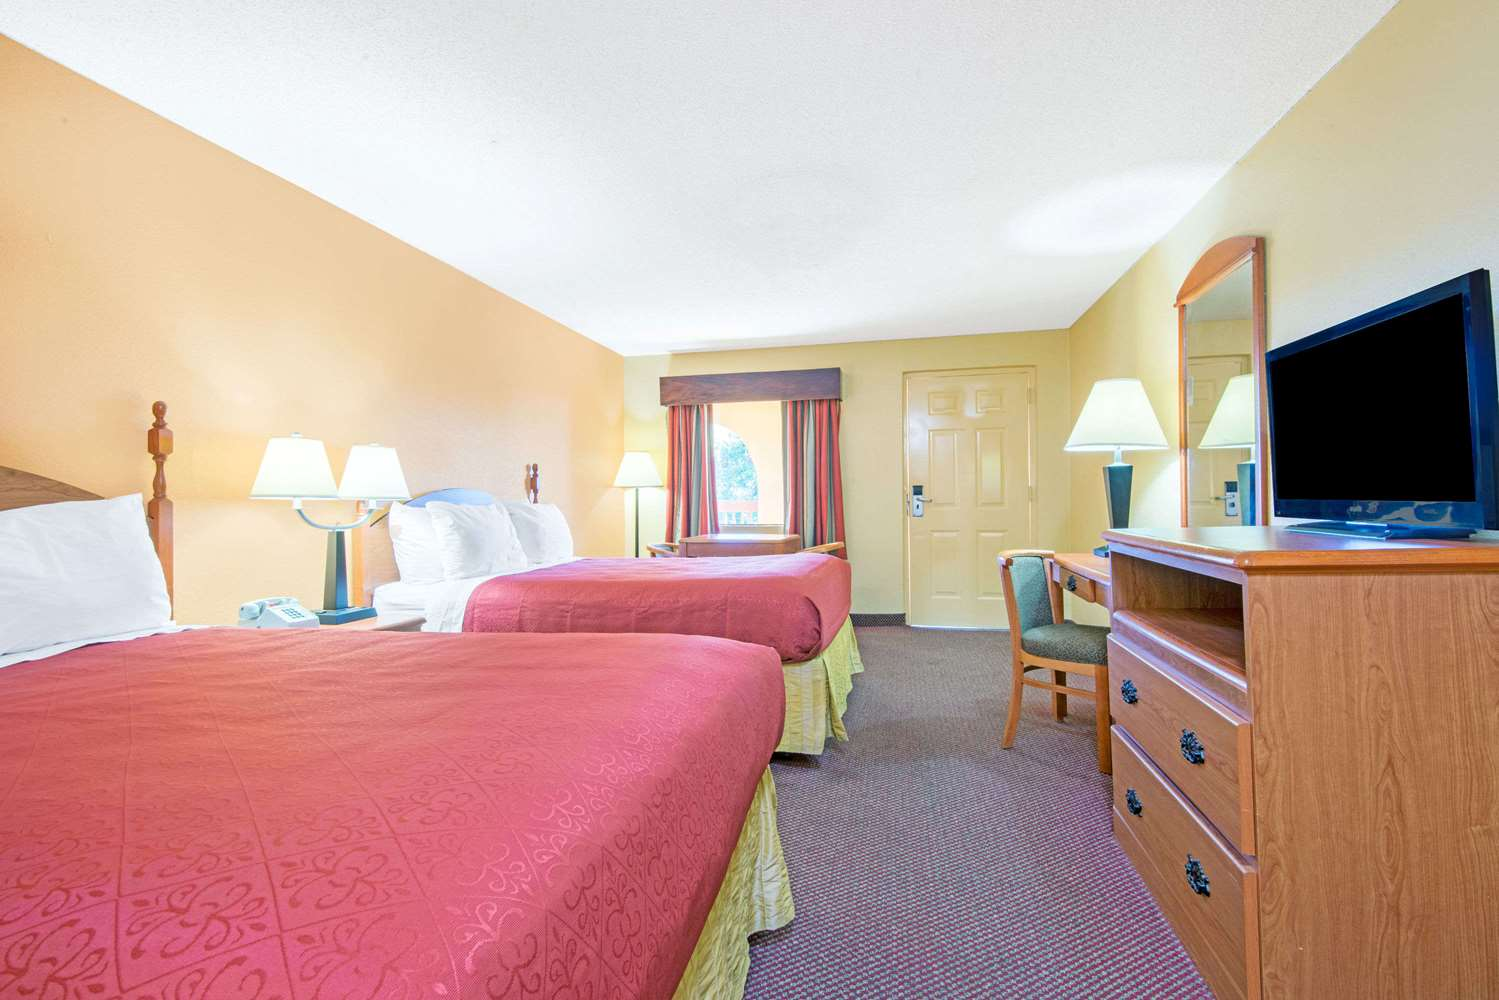 Days Inn Opelika  AL   See Discounts Room   Days Inn Opelika